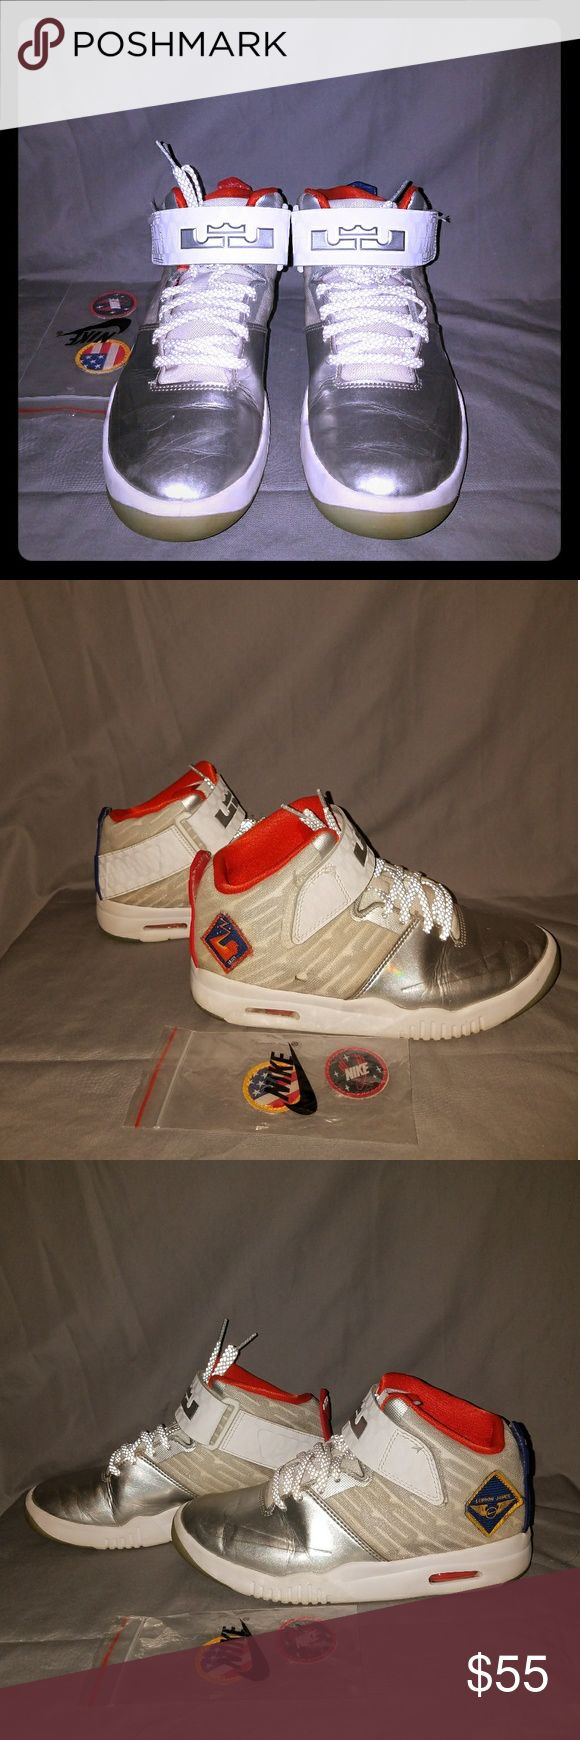 Nike LeBron Akronites Boys LeBron James Akronites with 4 Removable patches Nike Shoes Sneakers